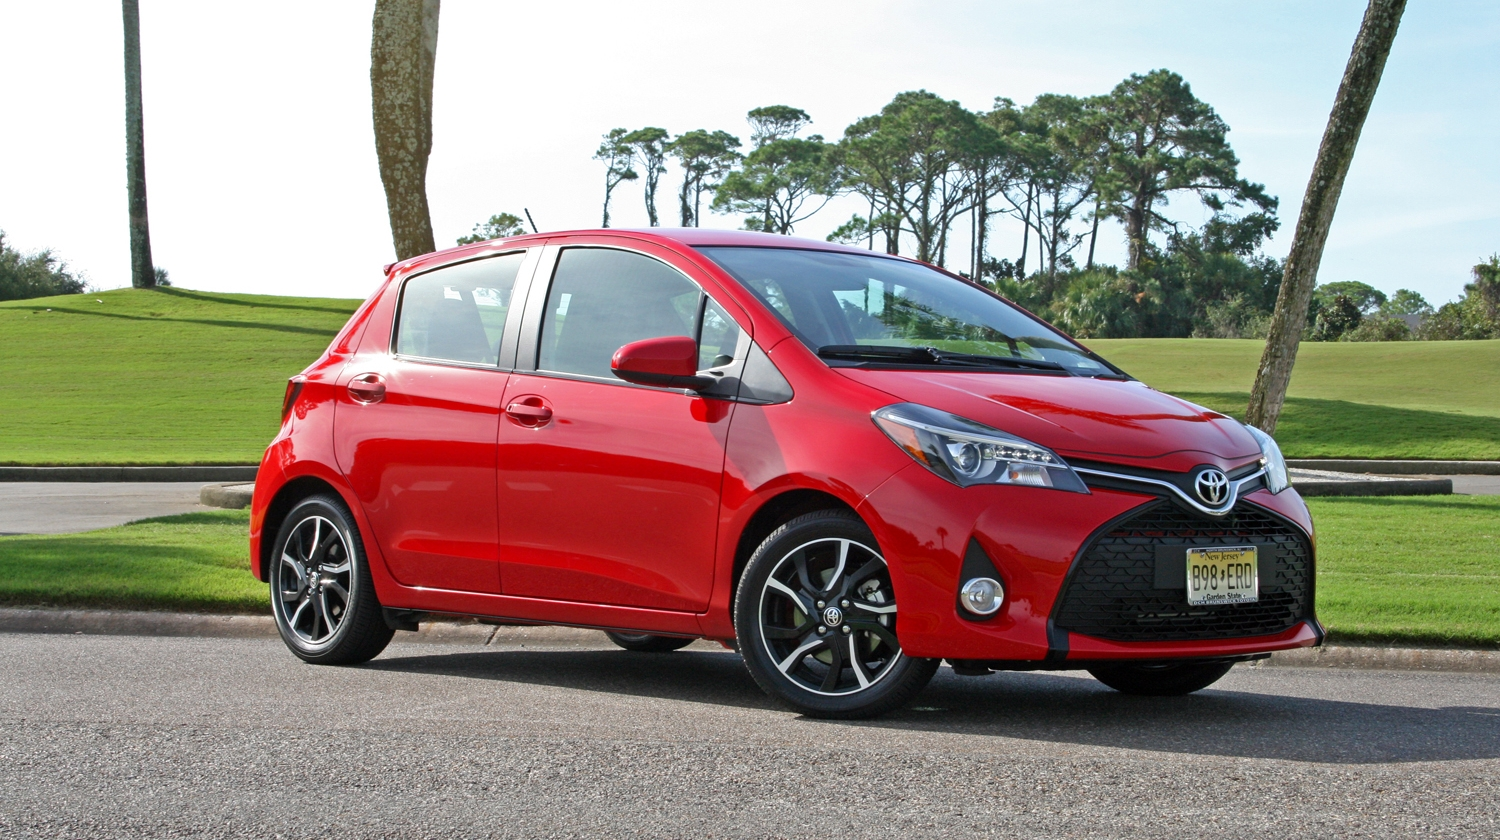 2015 toyota yaris driven review gallery top speed. Black Bedroom Furniture Sets. Home Design Ideas